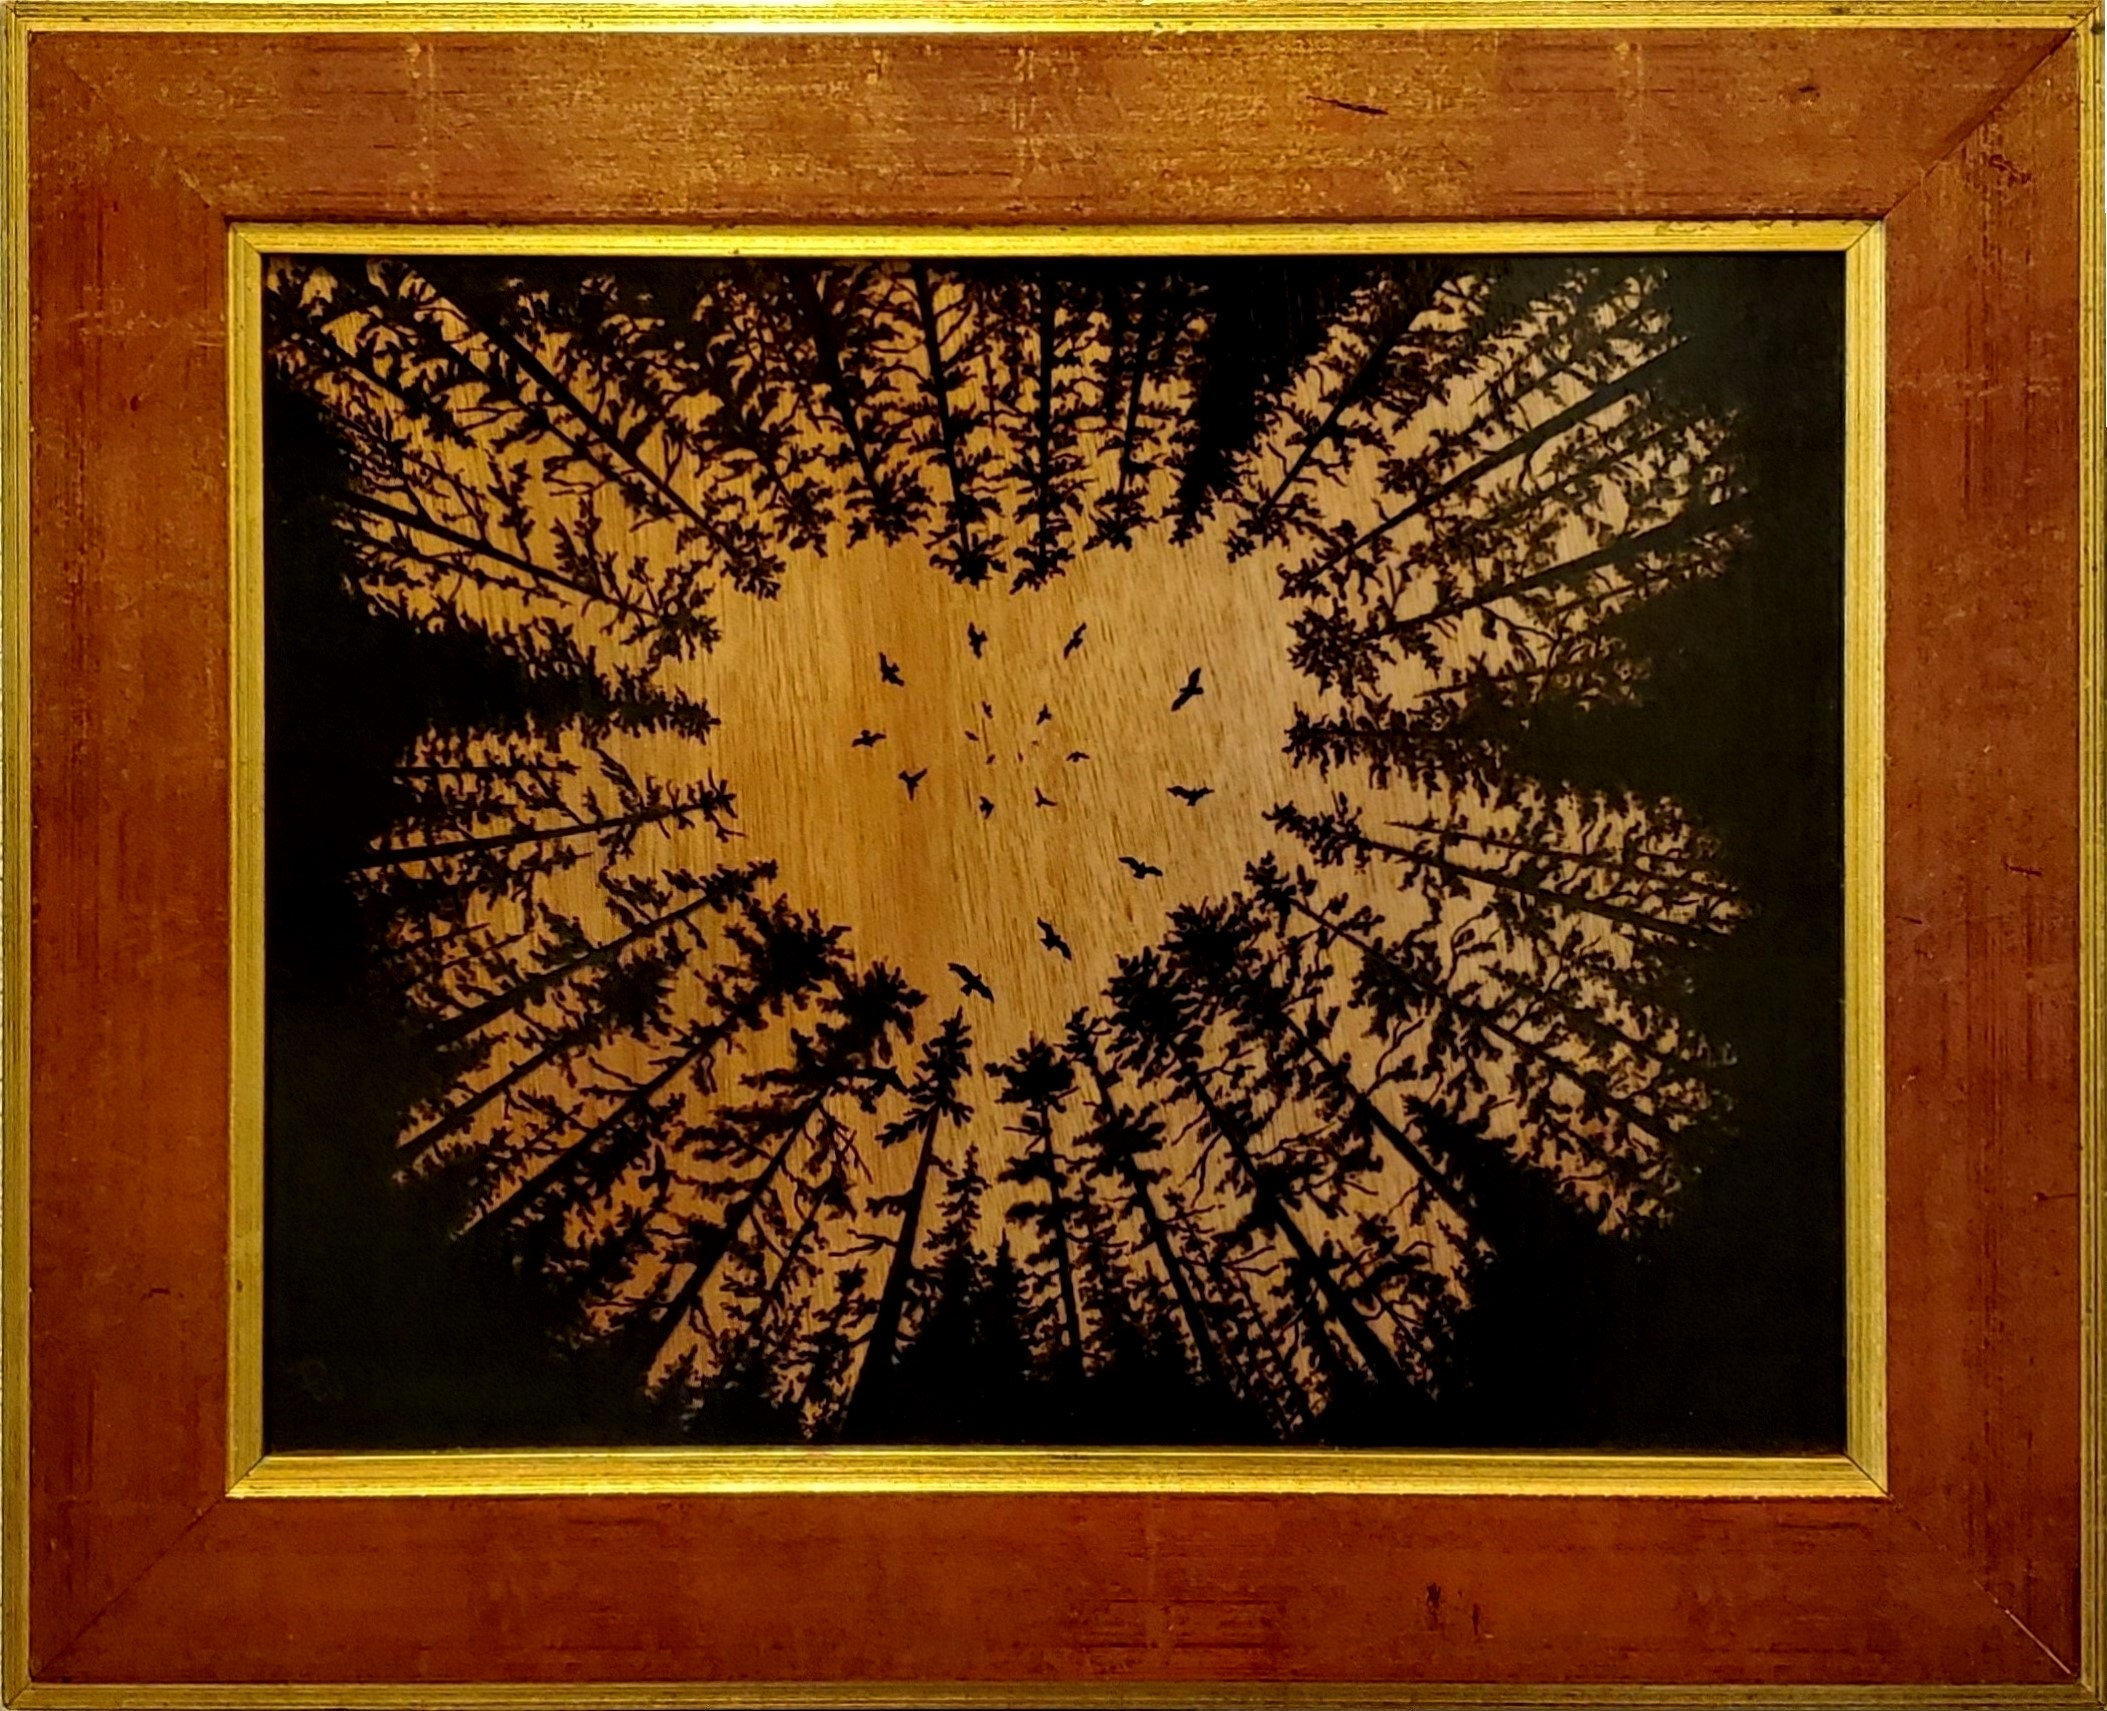 Woodburned image of trees with a heart-shaped opening above